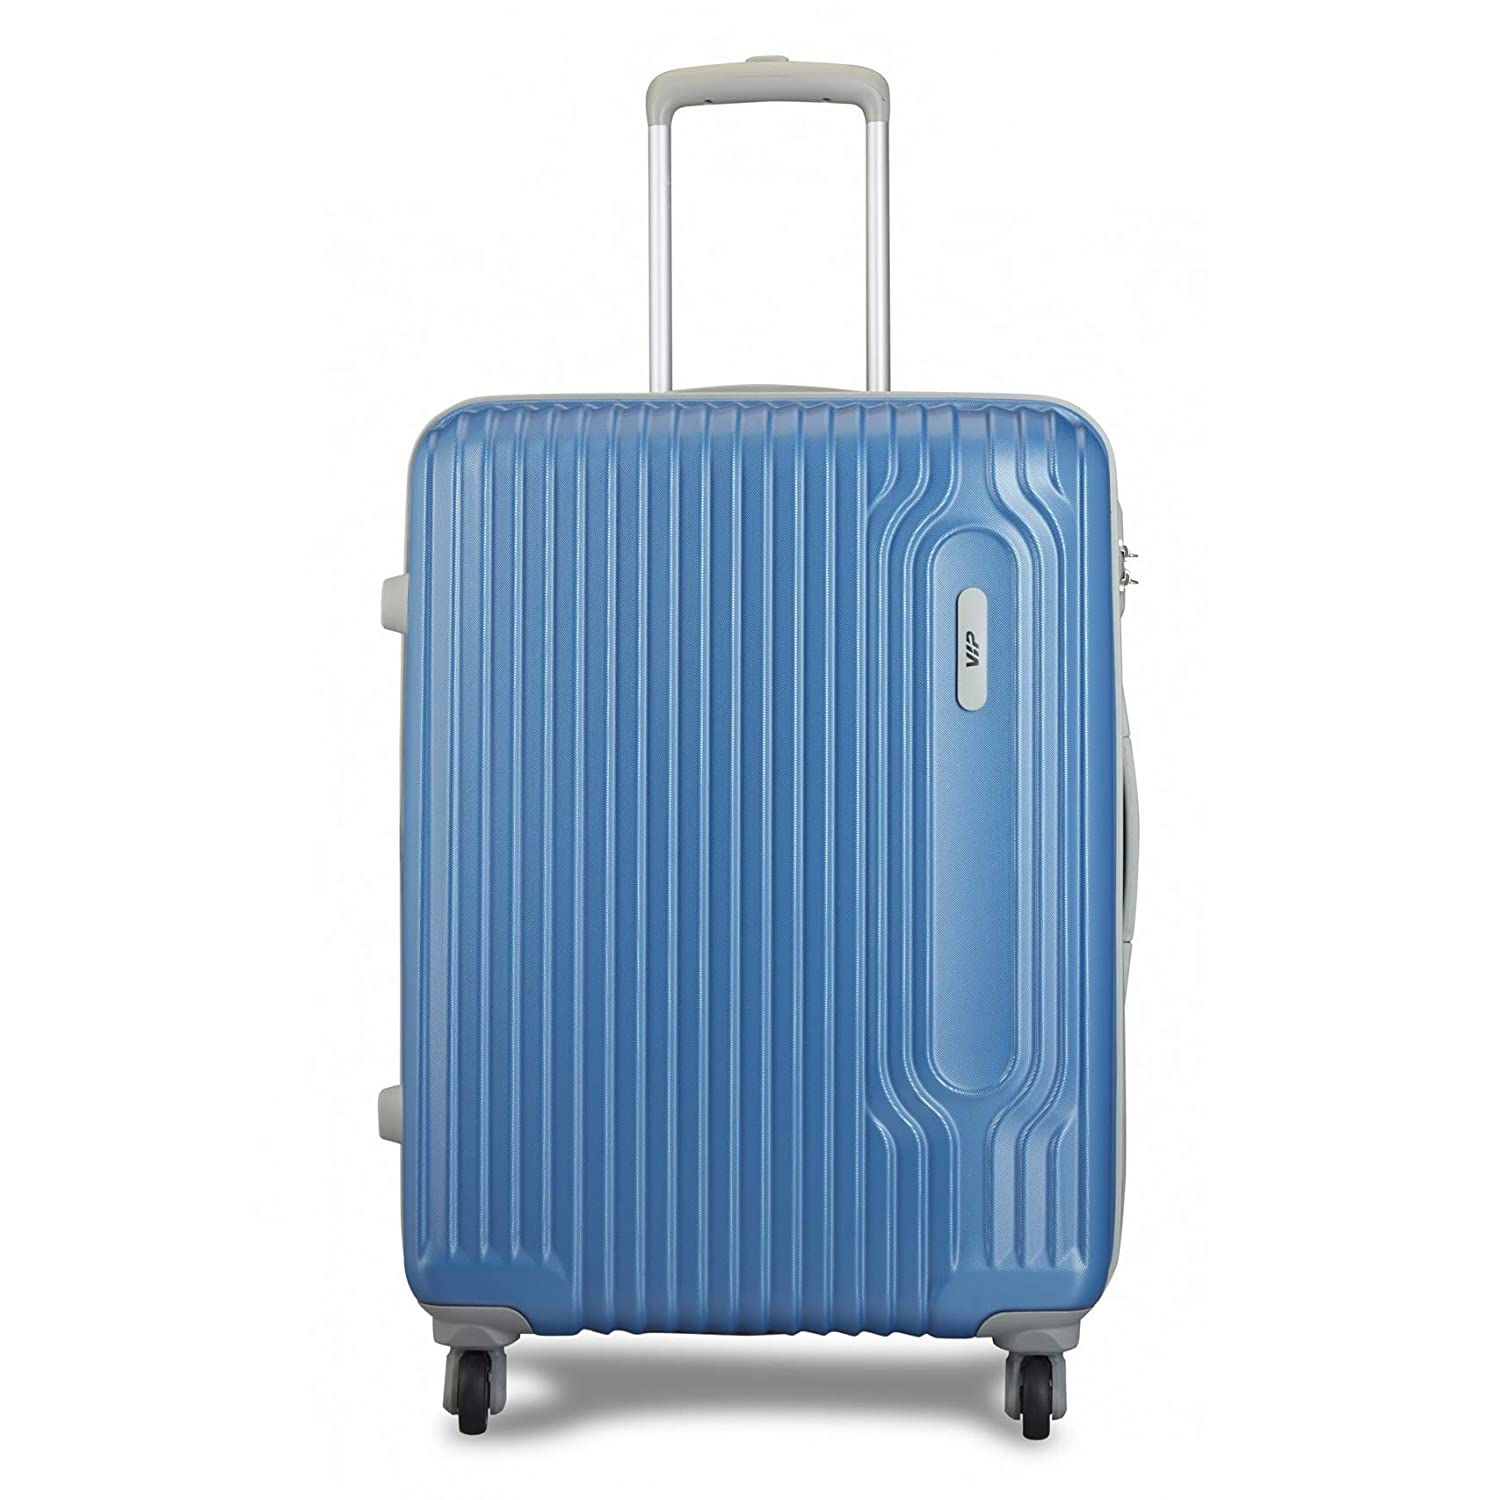 VIP Luggage up to 72% Off + Extra coupon at Amazon